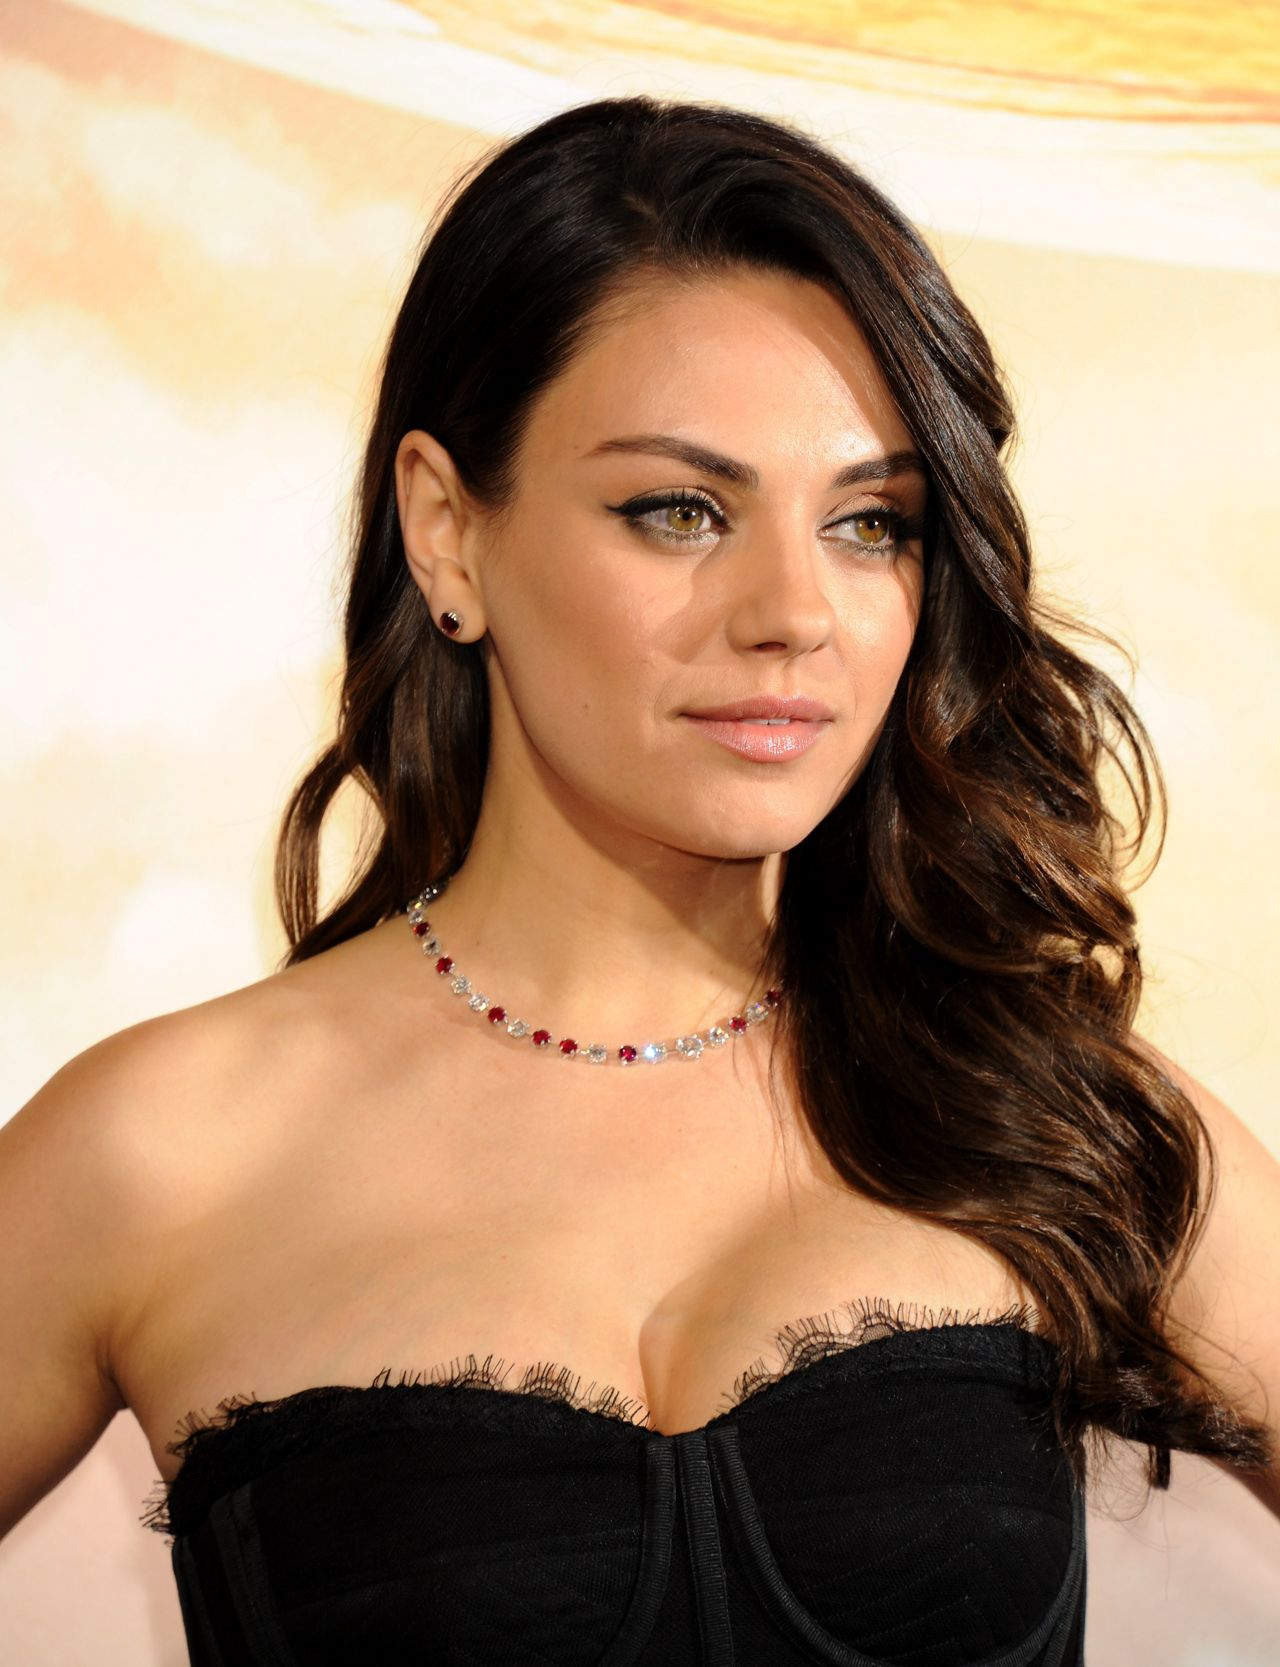 Mila Kunis – 'Jupiter Ascending' Premiere in Hollywood Mila Kunis